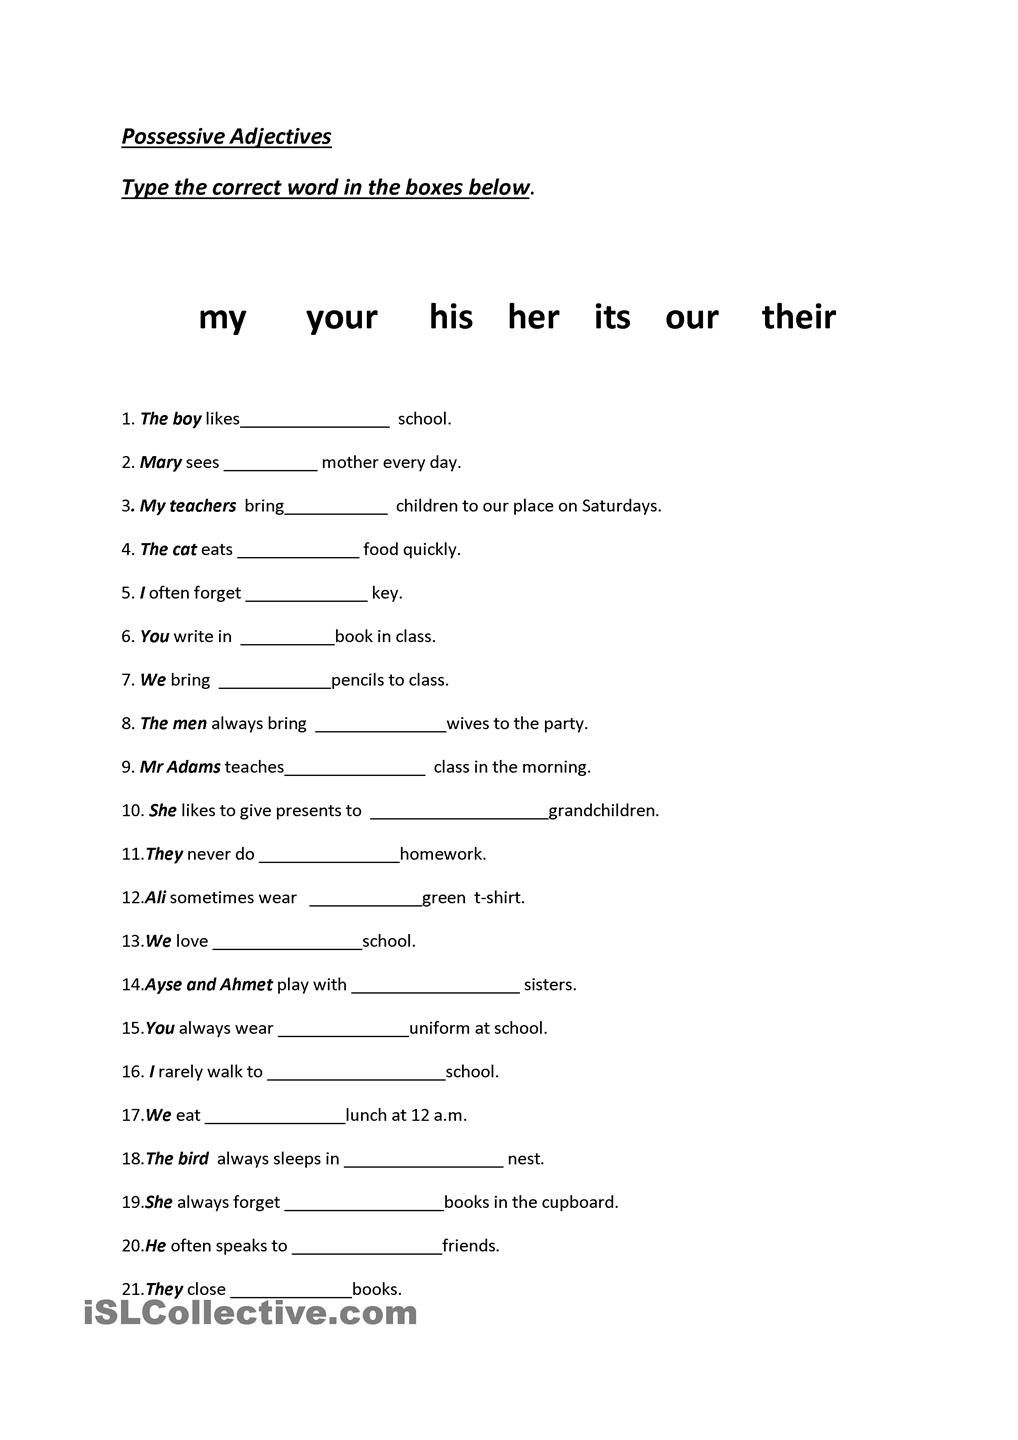 worksheet Exercise Worksheets english worksheet school supplies pictionary family members complete the sentences with words in box hope you find it interesting thank describing people reading speaking sp